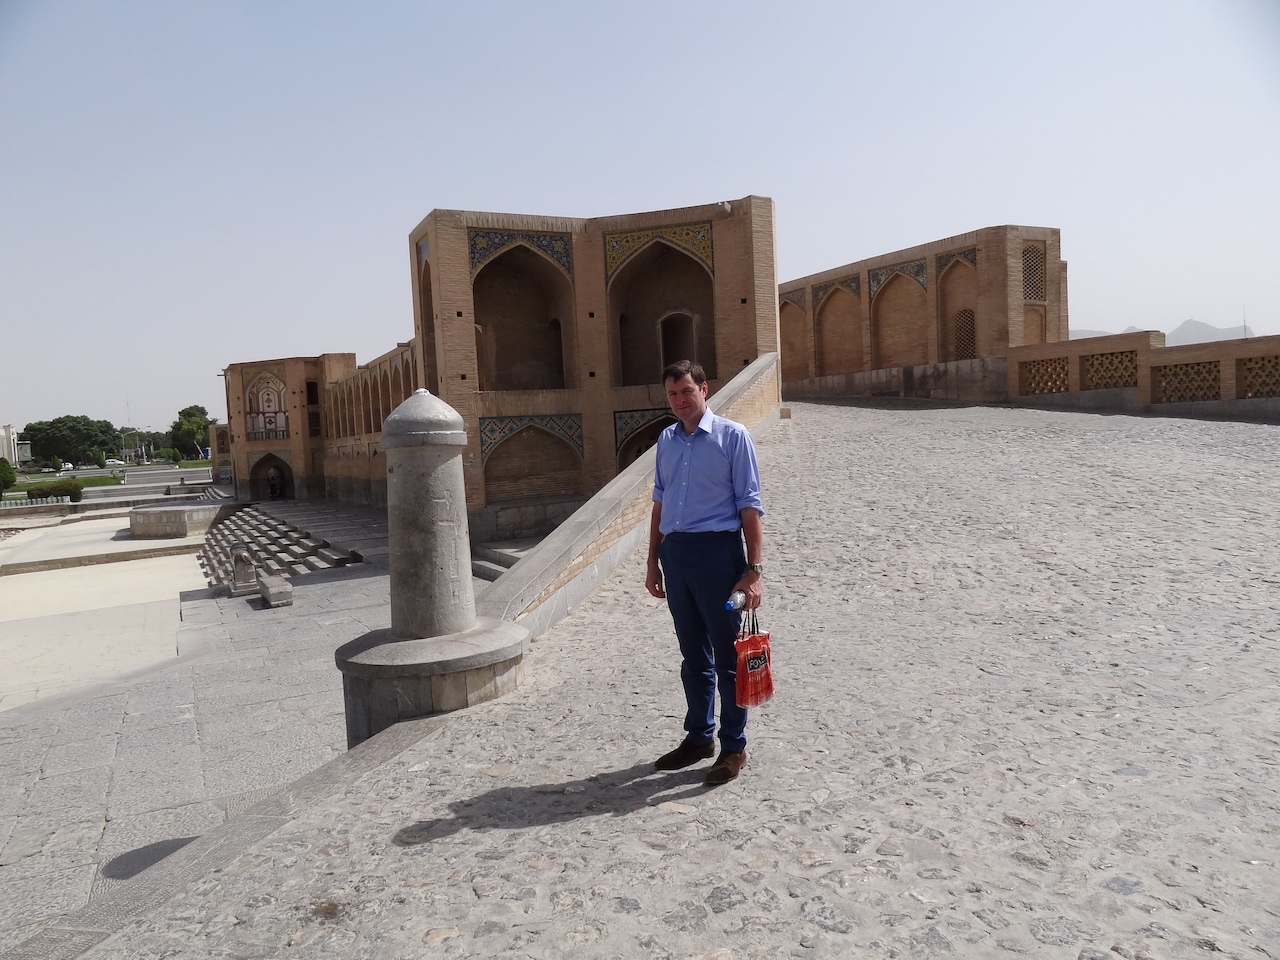 Iran first trip - final thoughts